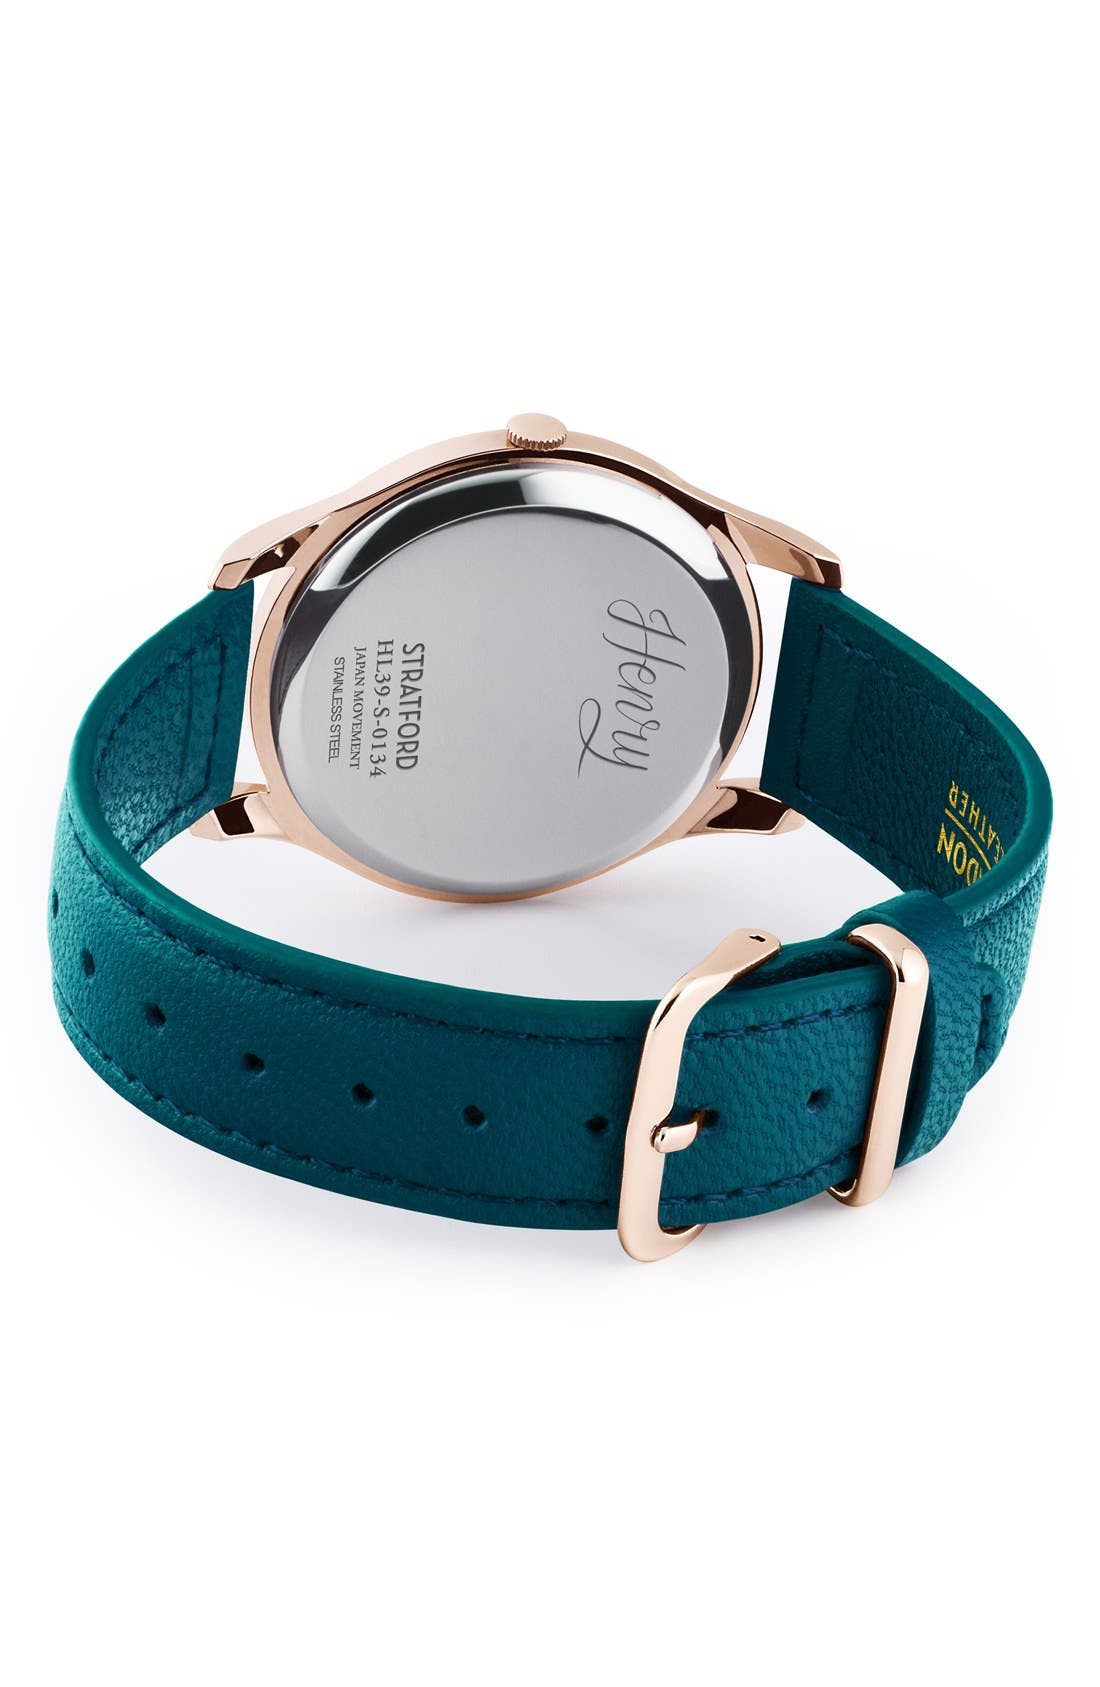 'Stratford' Leather Strap Watch, 38mm,                             Alternate thumbnail 2, color,                             Teal/ Teal